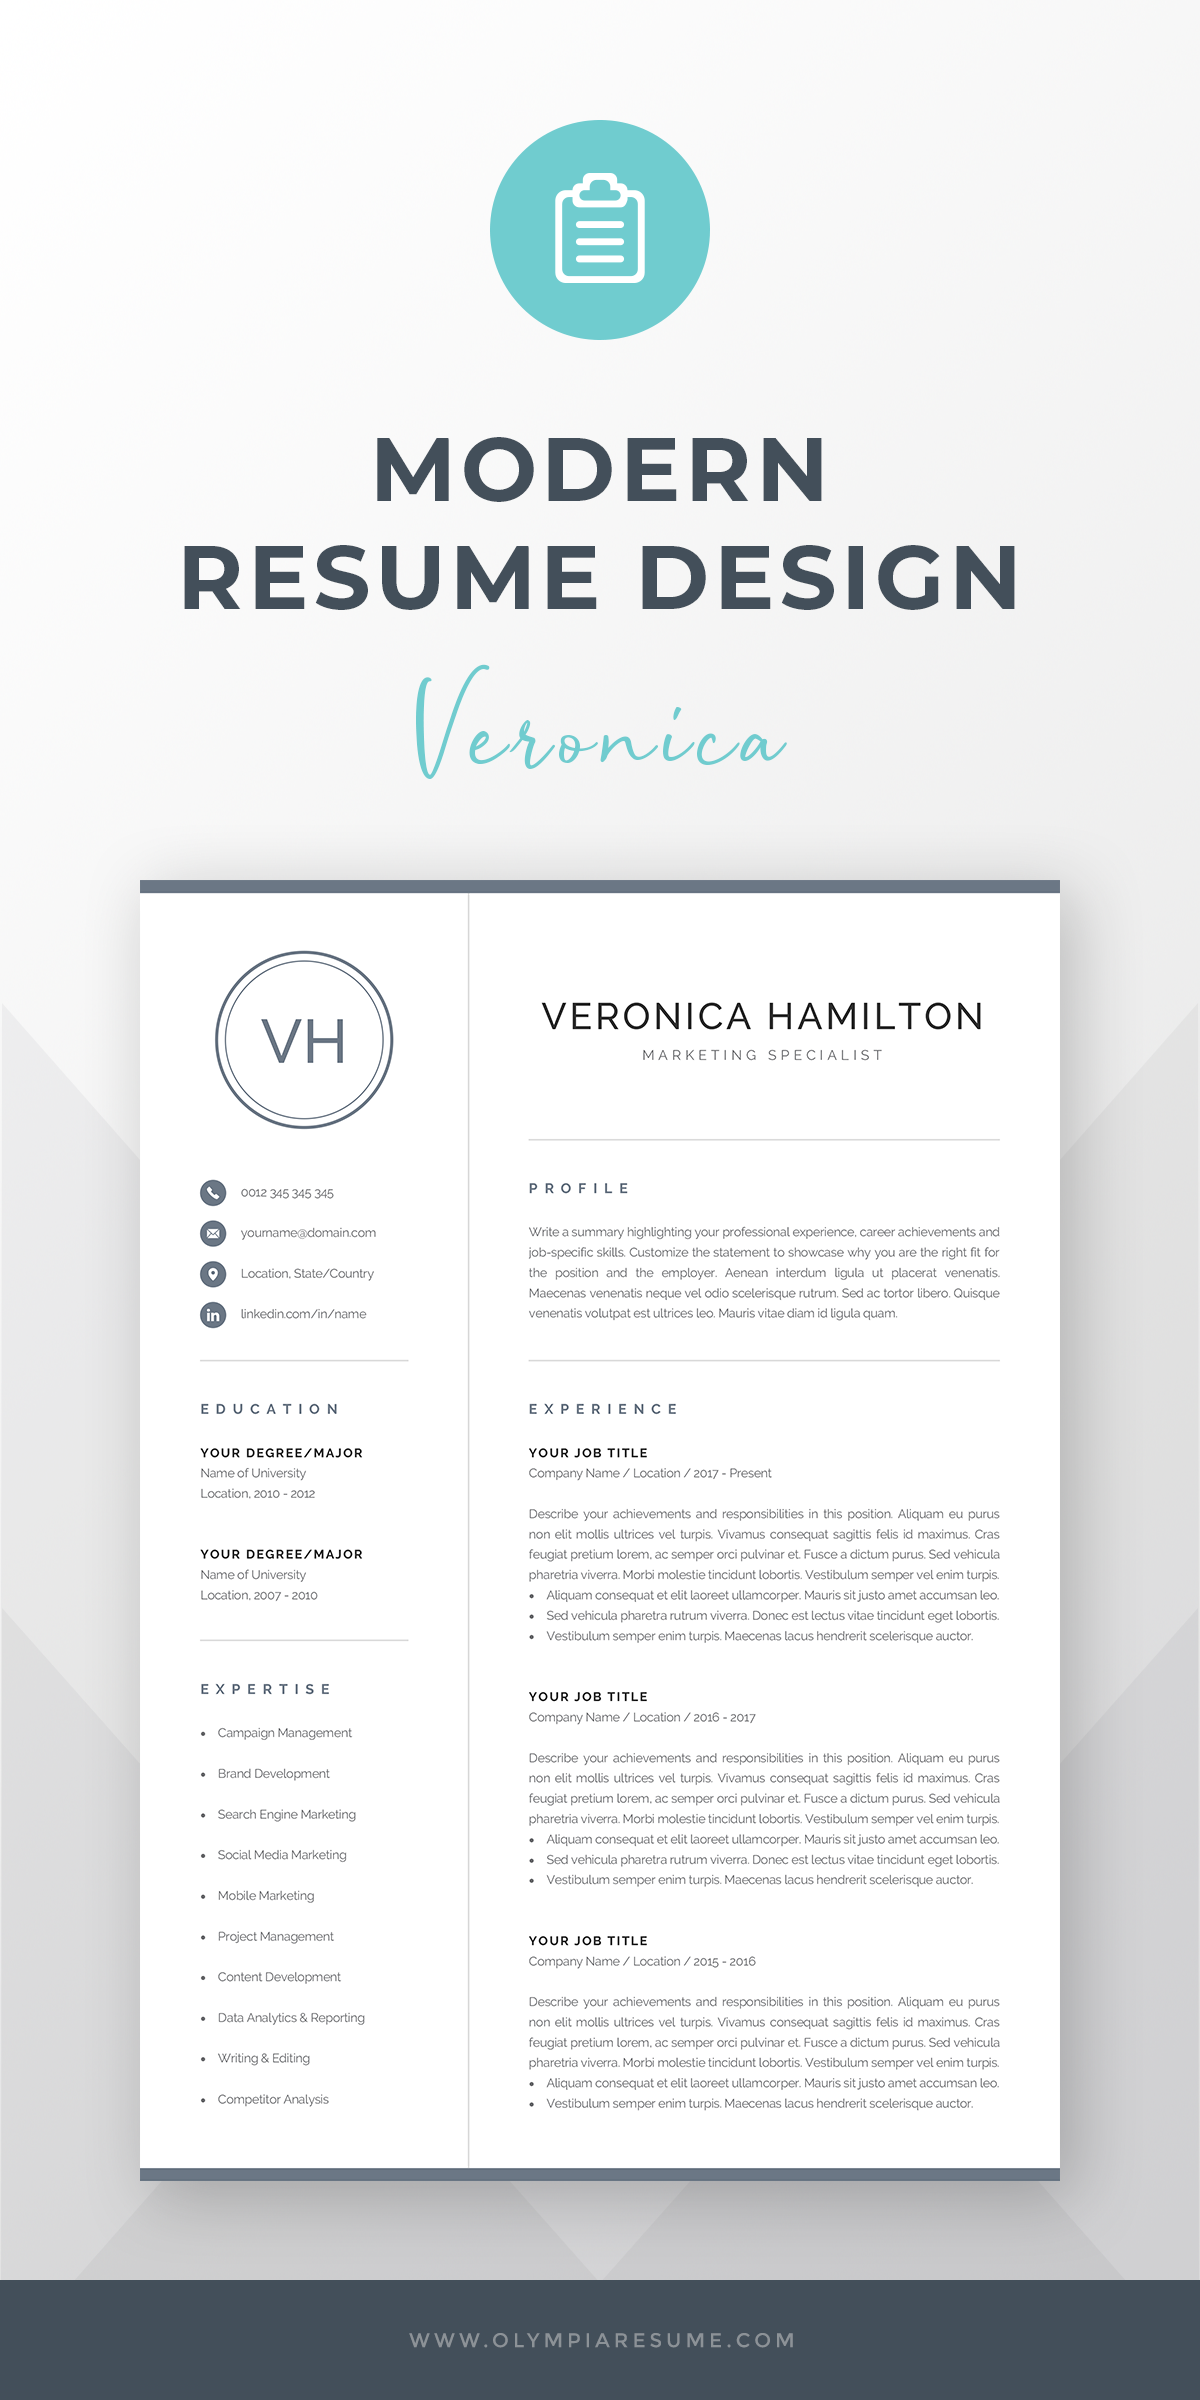 Resume Template With Monogram 1 2 Page Resume Modern Etsy Modern Resume Design Resume Design Resume Design Free